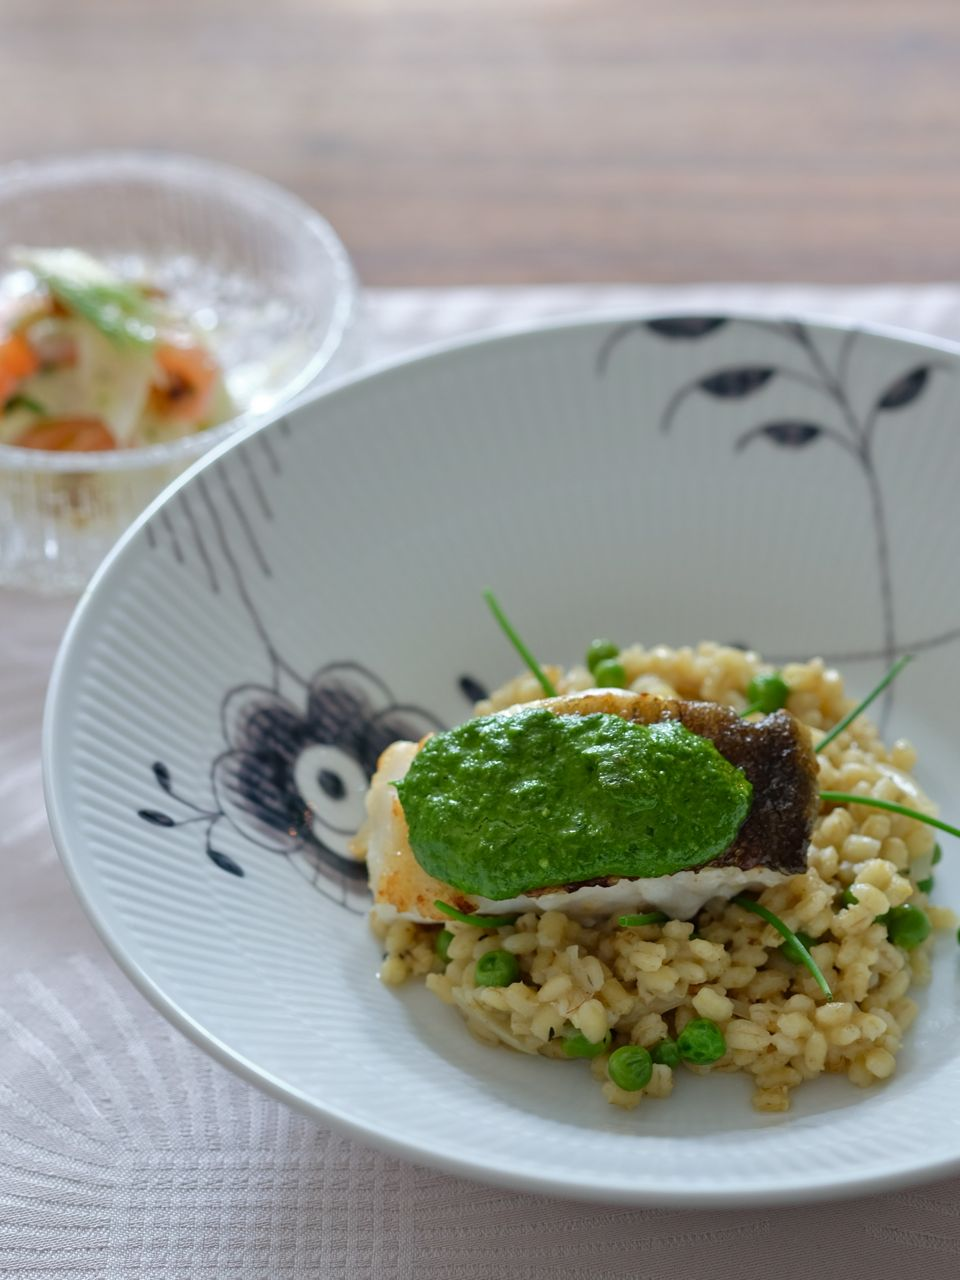 Pan-fried cod with chive pesto & barley risotto